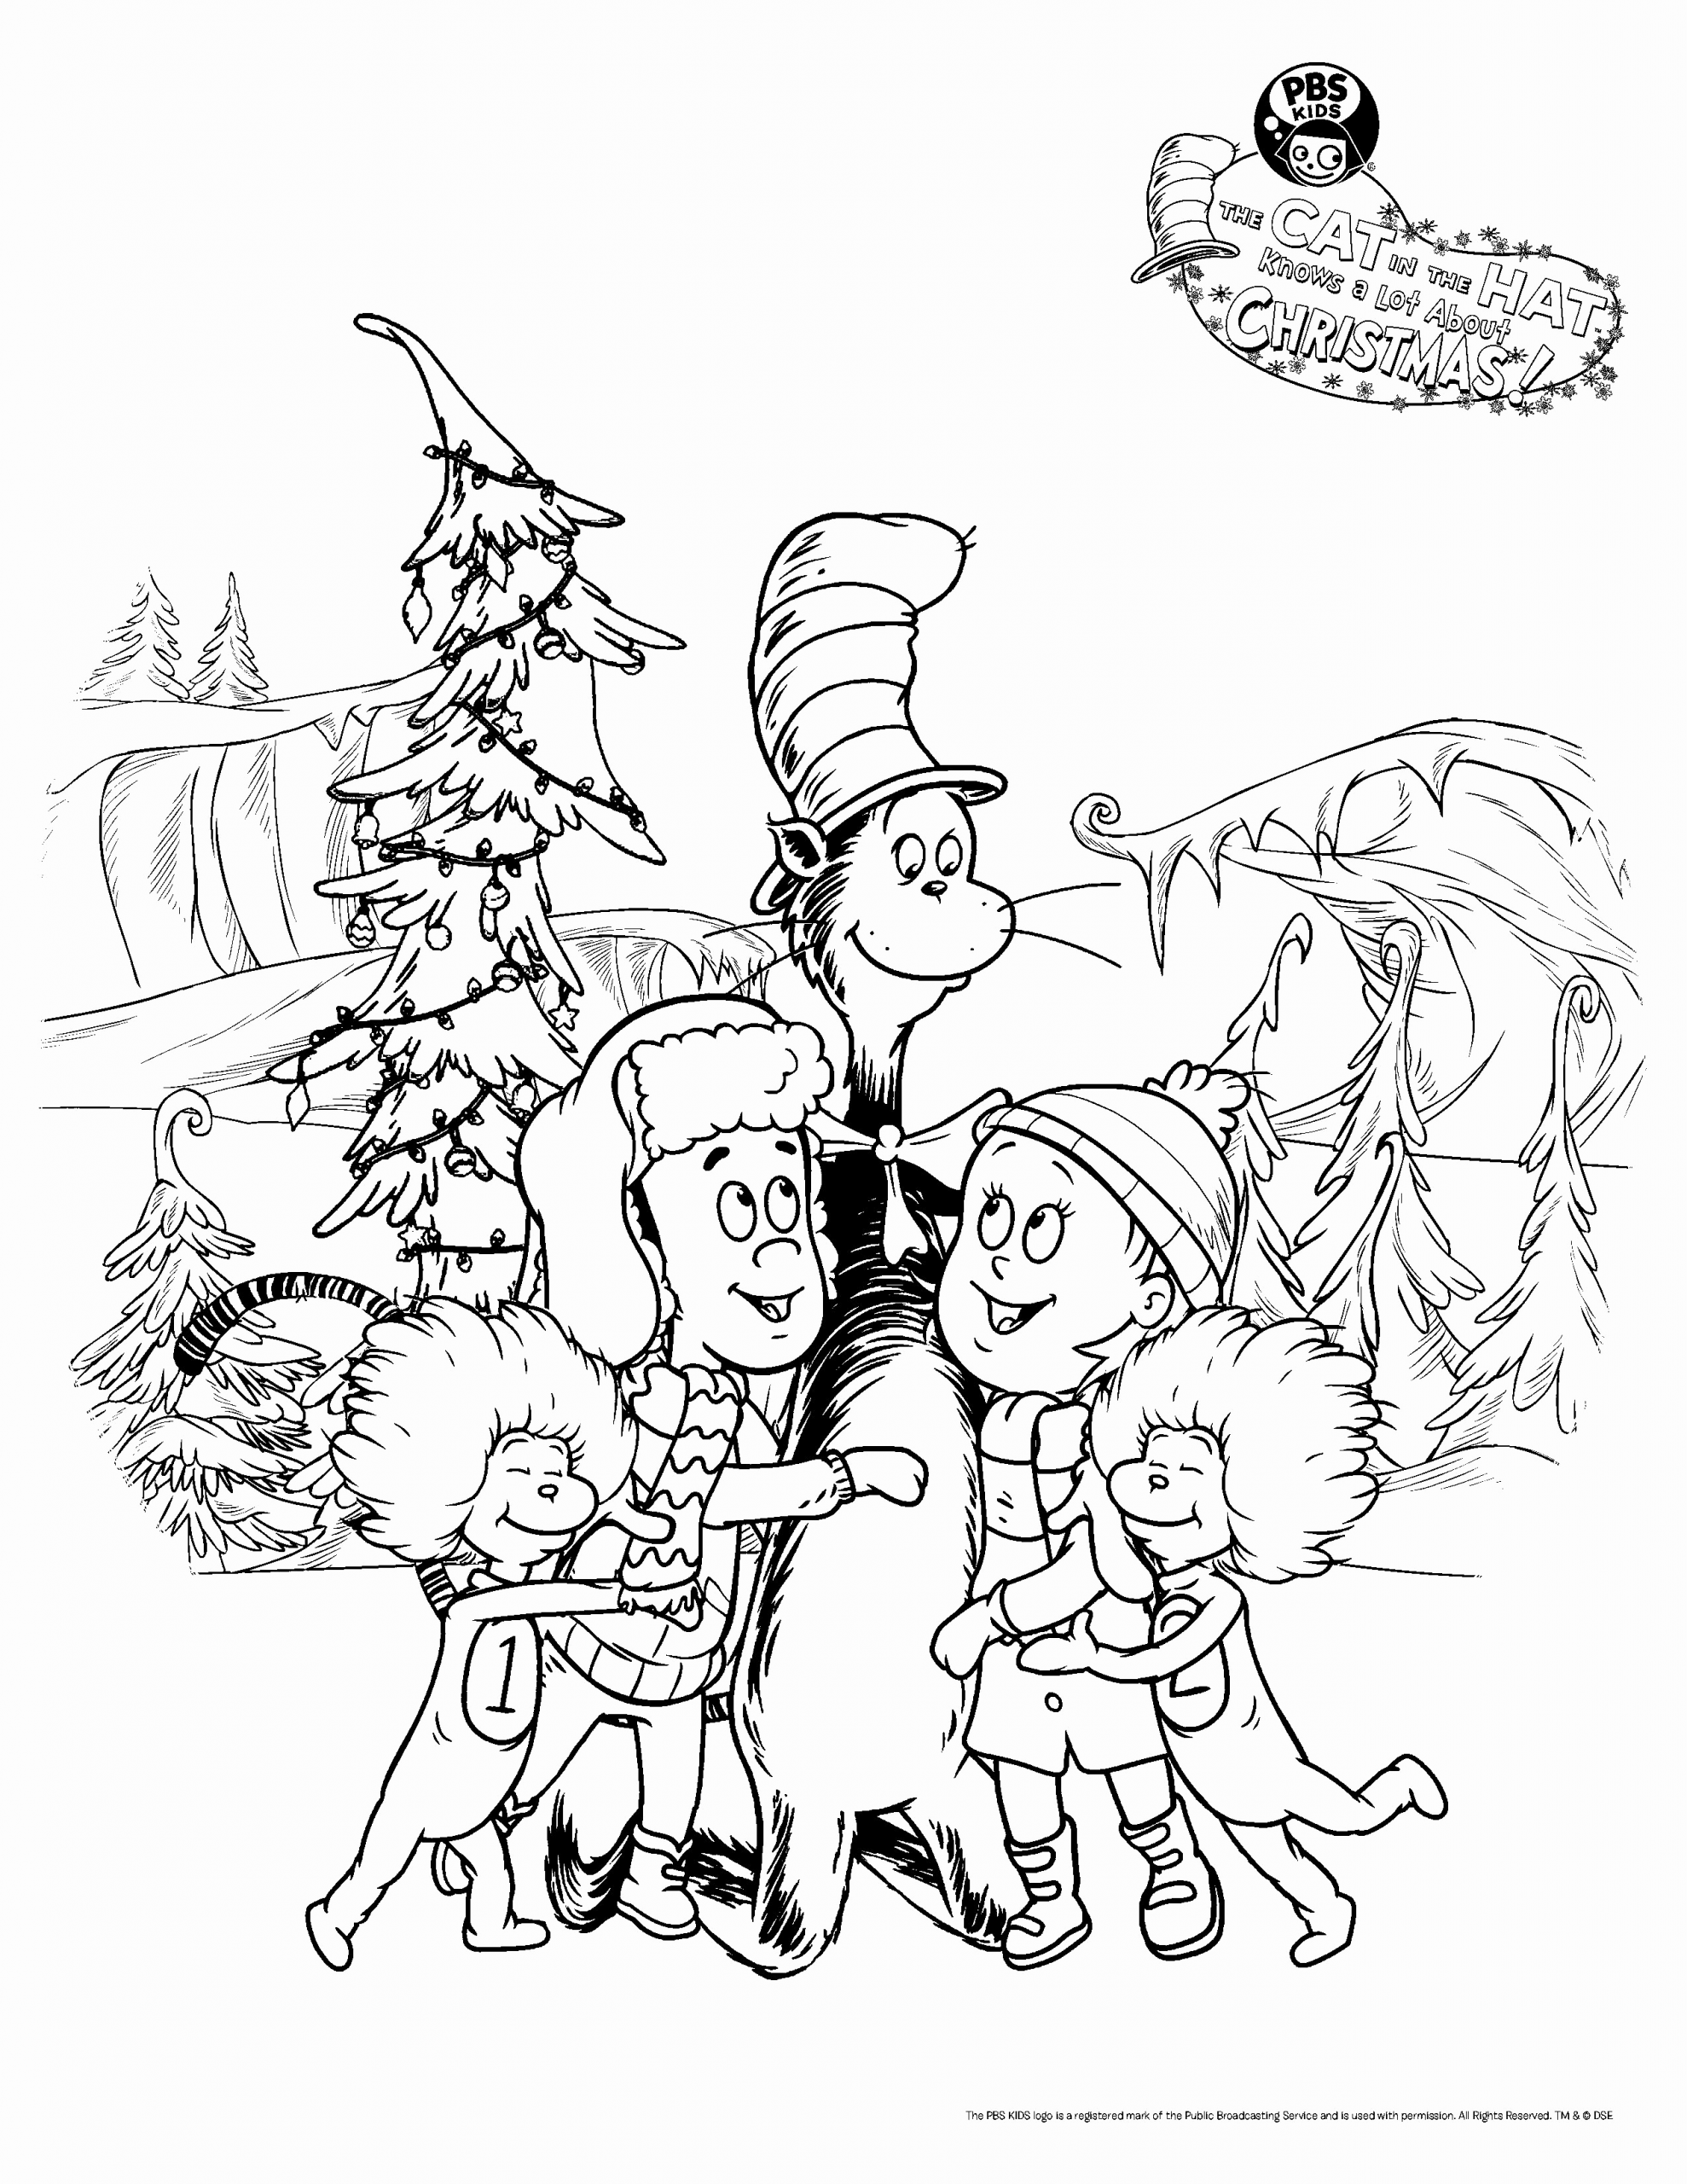 Cat In The Hat Coloring Pages Pbs Kids In 2020 Cat Coloring Page Cartoon Coloring Pages Birthday Coloring Pages